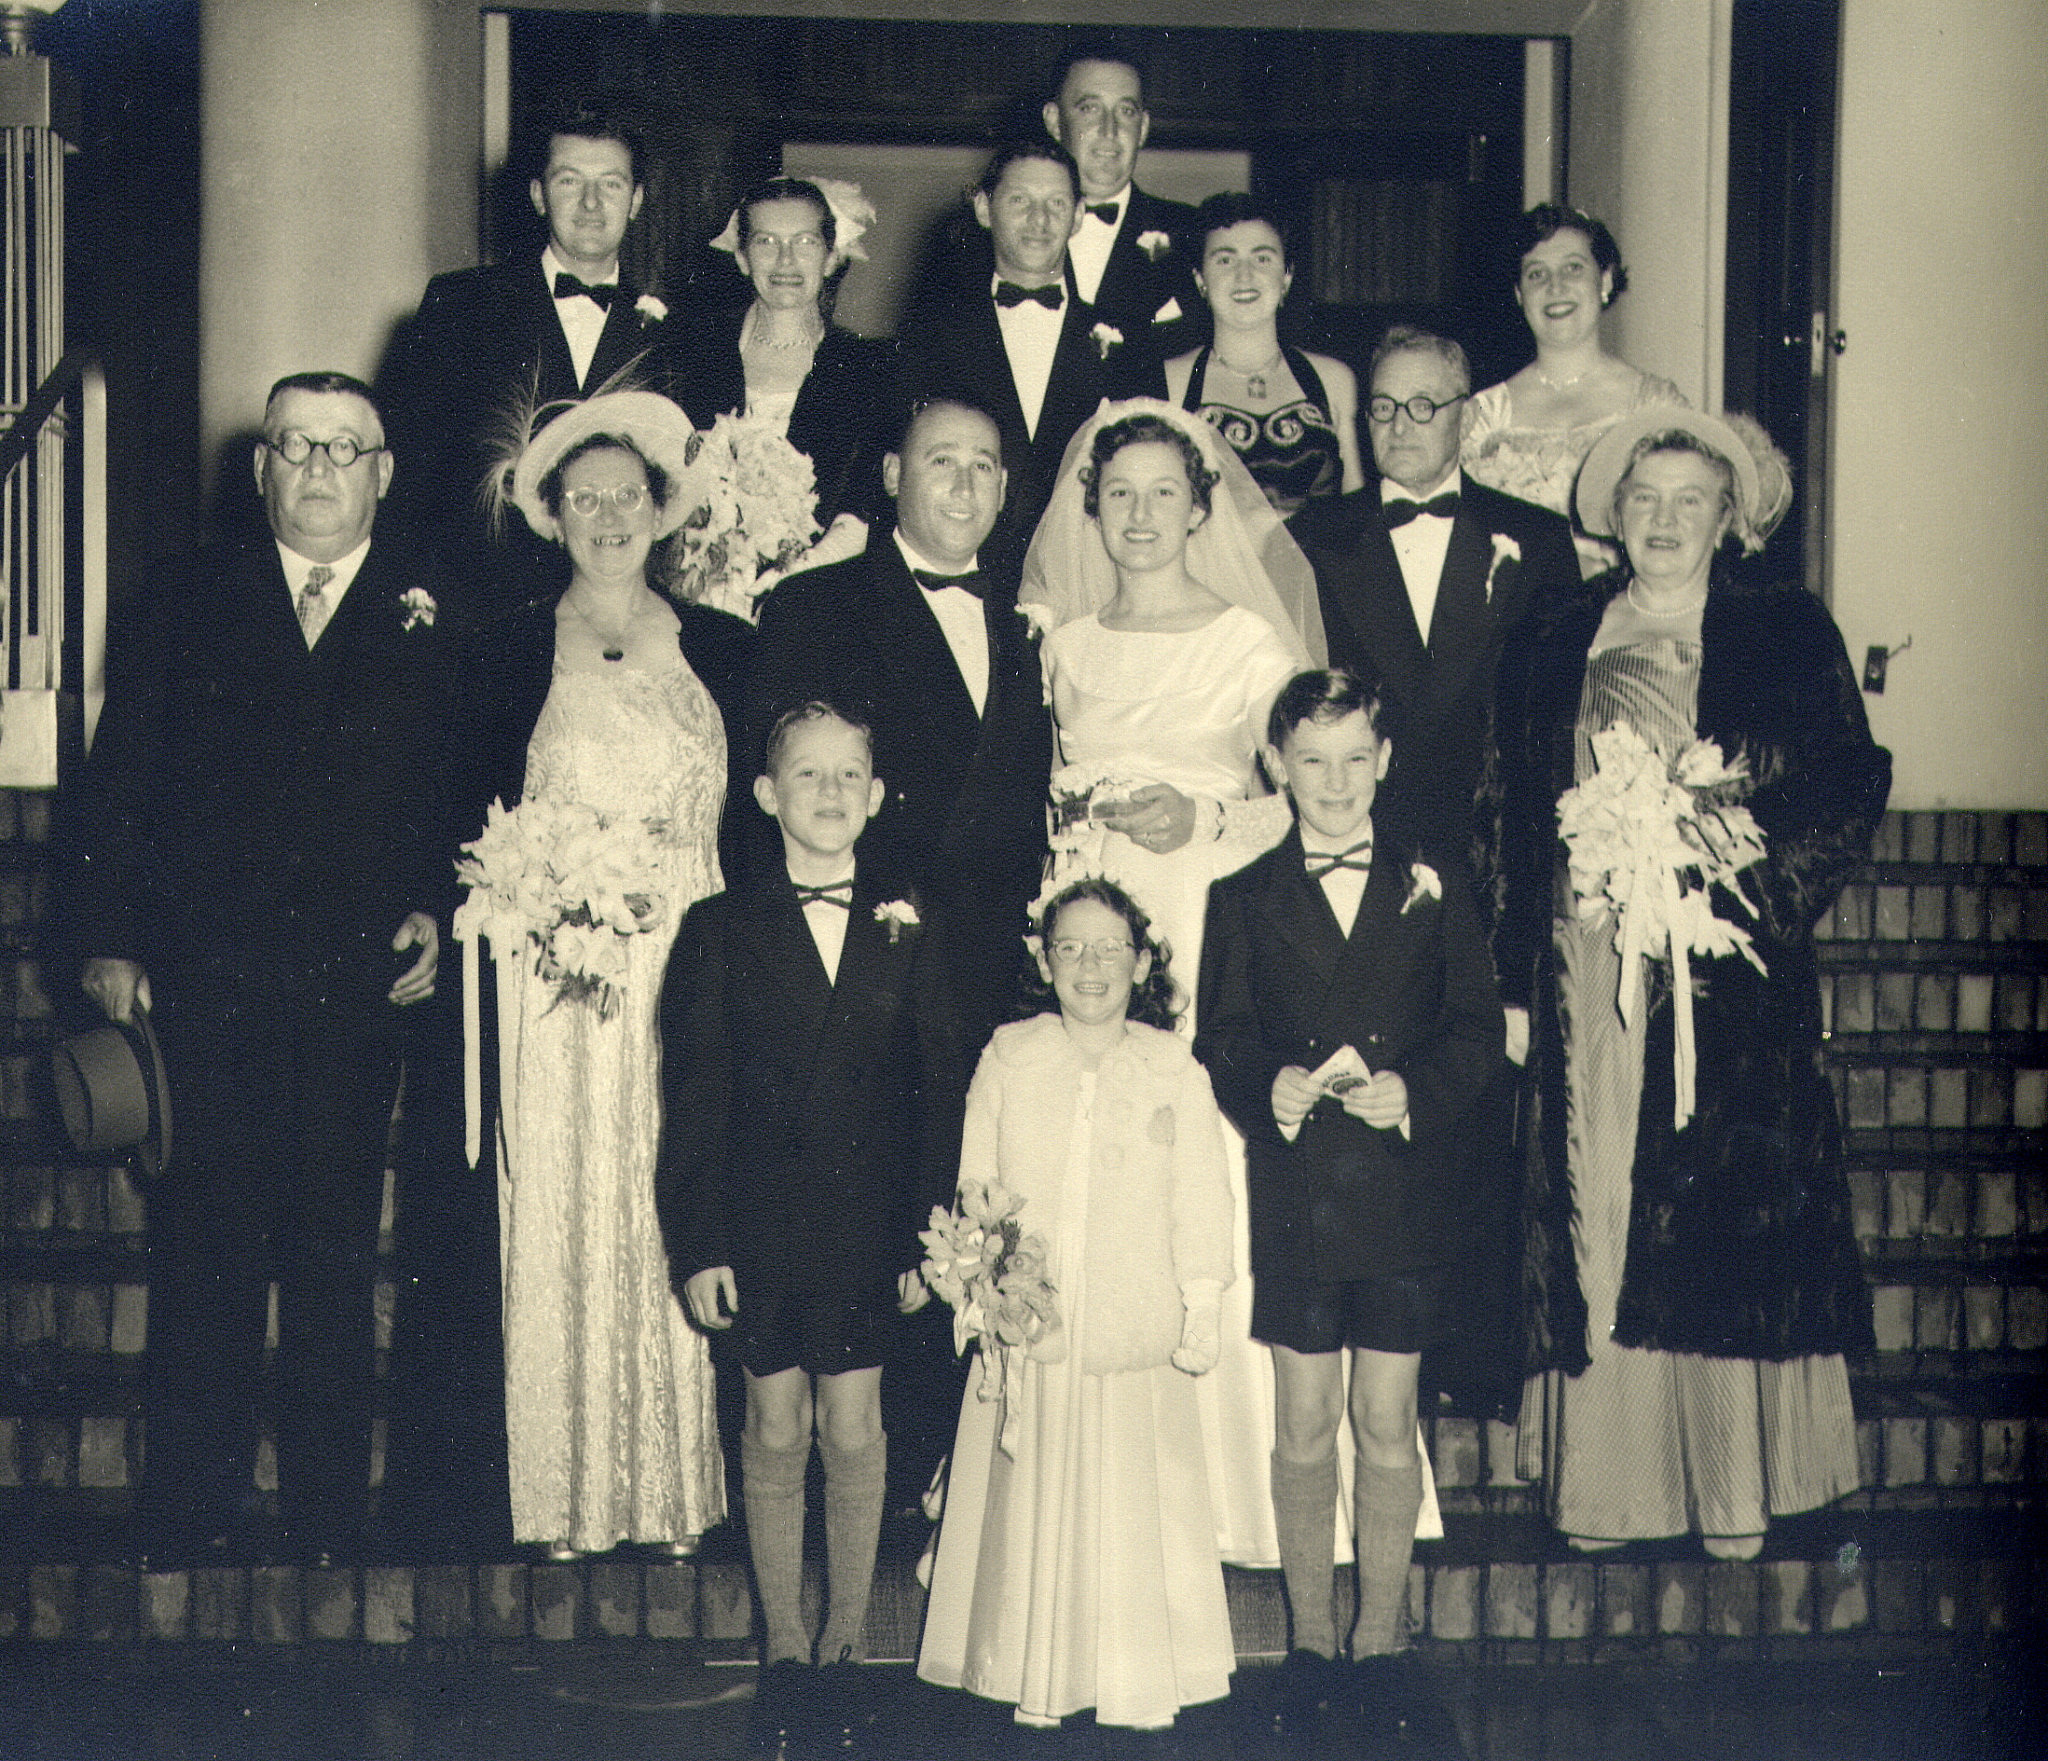 Vicky and Nokkie Scher on their wedding day. Golda Scher next to the groom, Judith Sher, behind the bride with Hanke next to her.